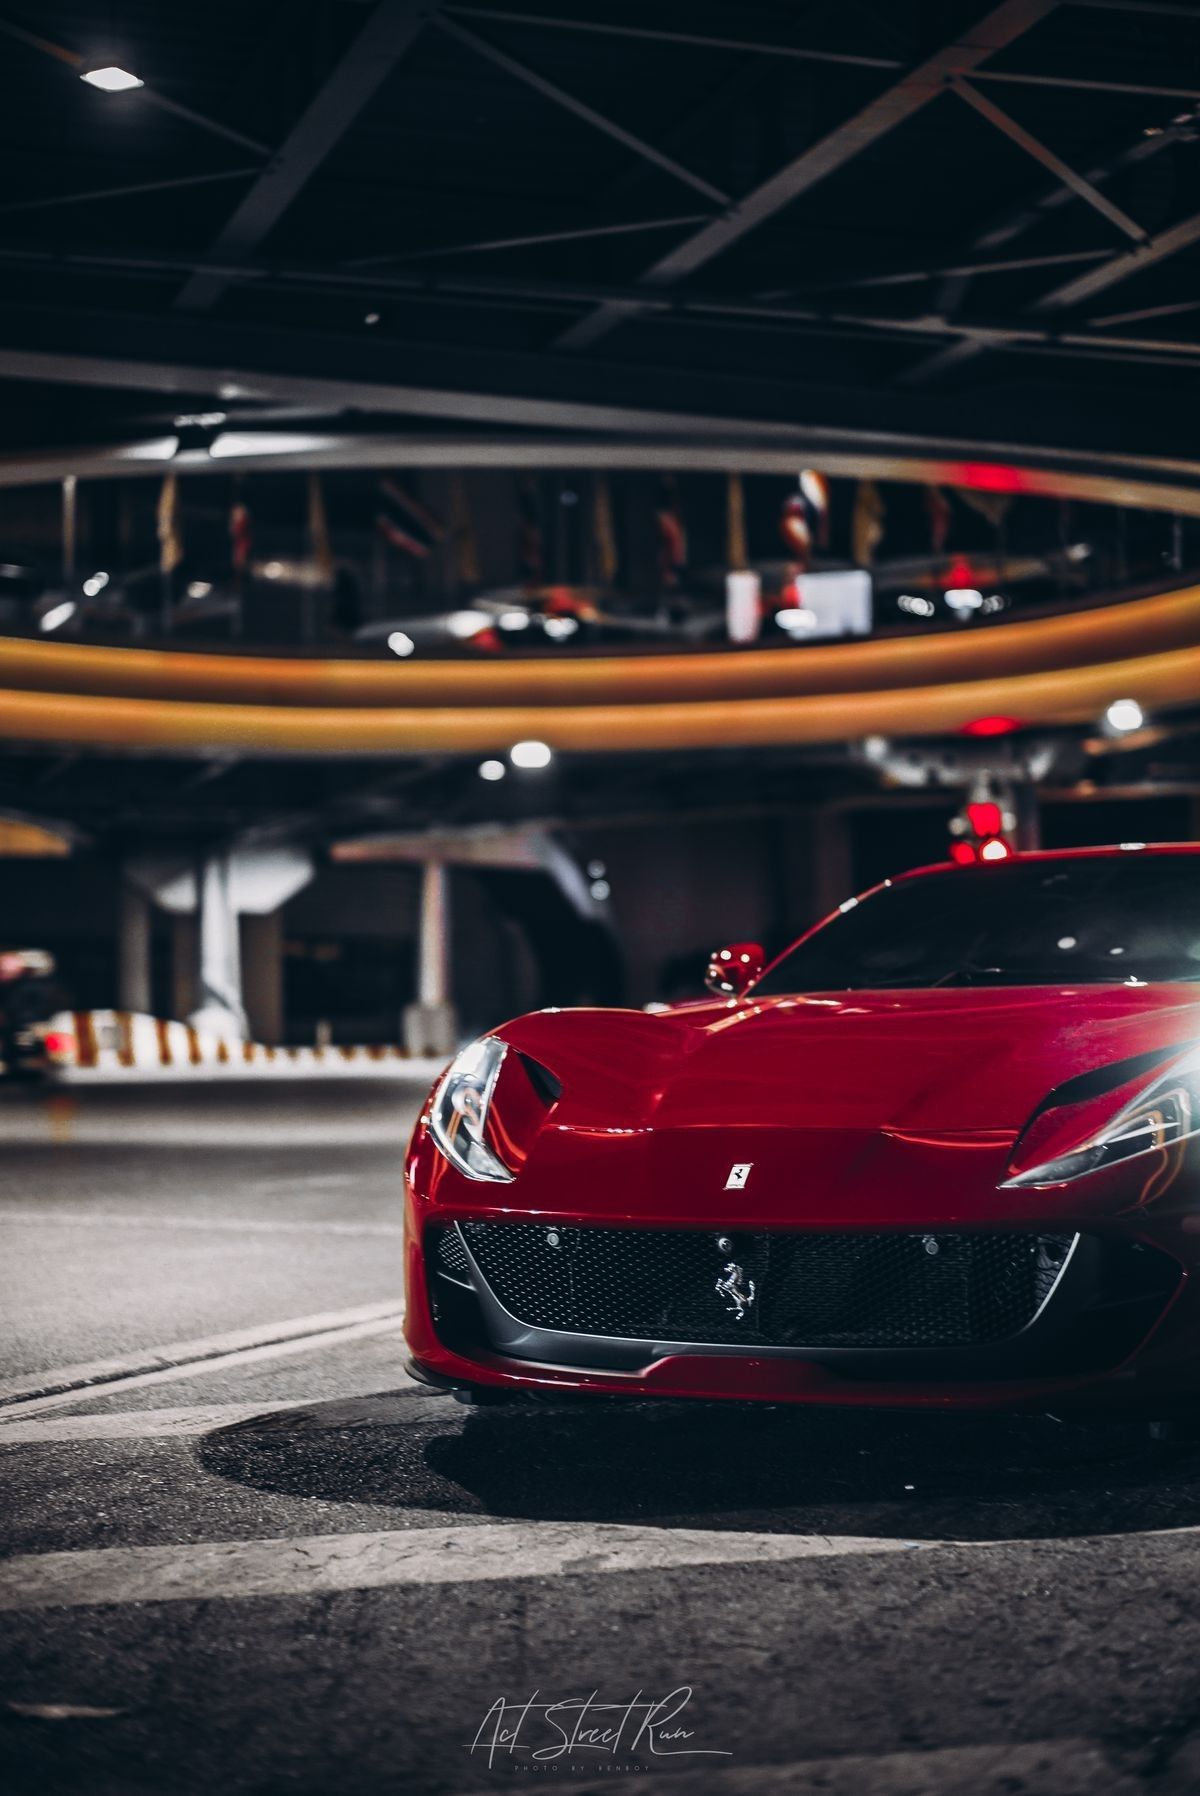 Amazing Red Ferrari Wallpapers With Images Best Luxury Cars Ferrari Gt Cars